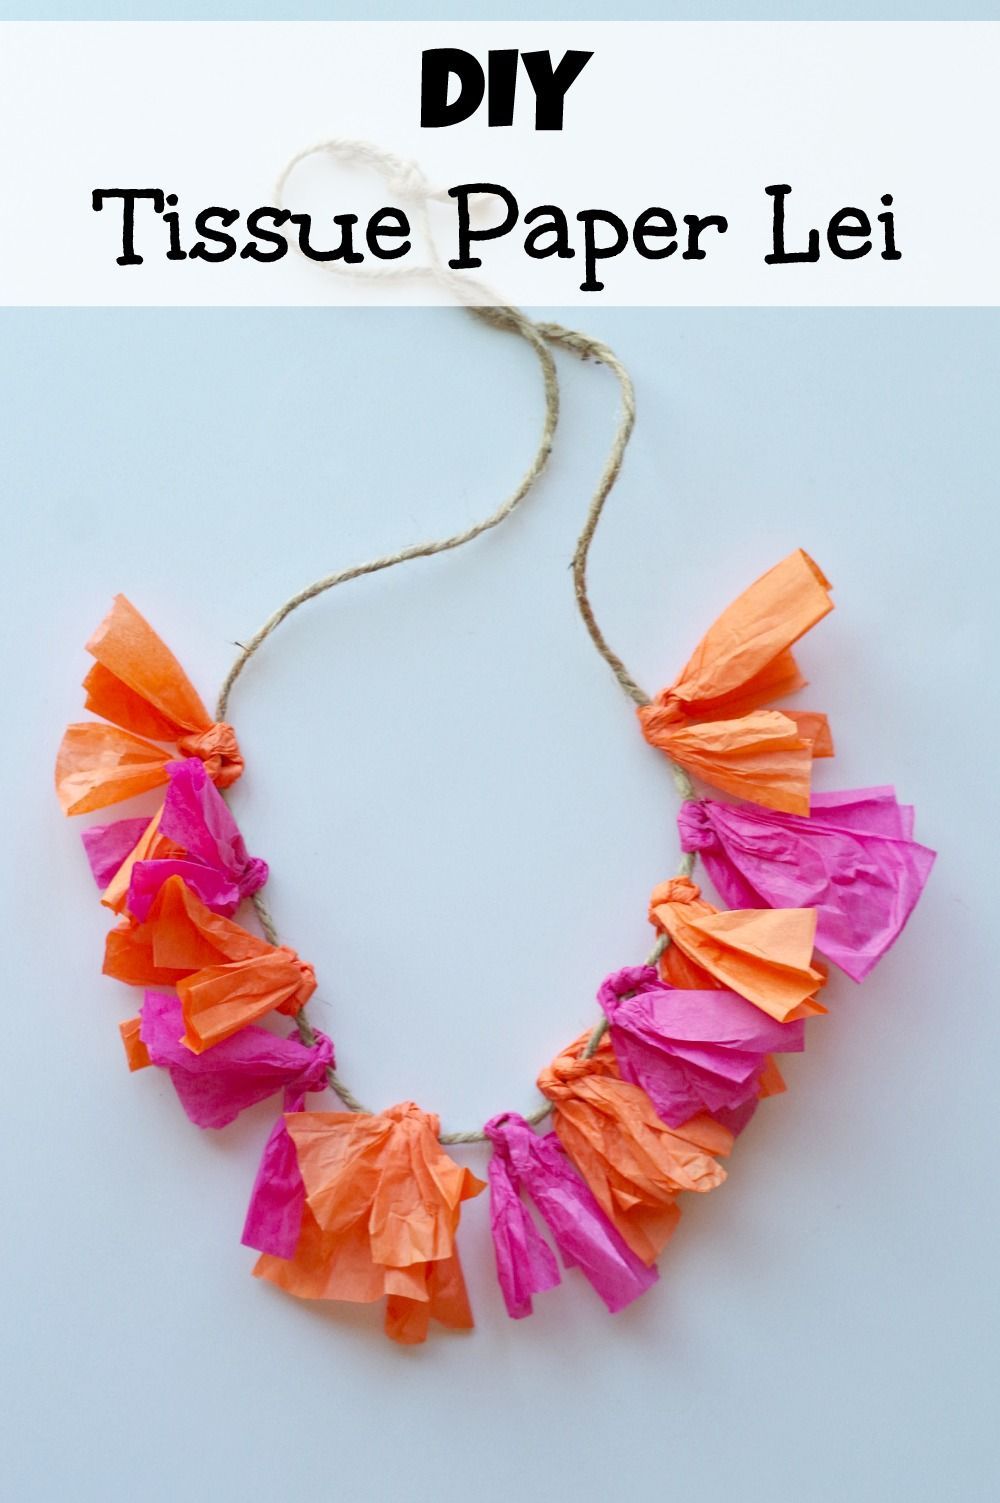 Quick easy way to make a tissue paper lei pinterest summer this tutorial shows a quick and easy way to make a tissue paper lei its perfect for summer parties especially hawaiian or pool party themes izmirmasajfo